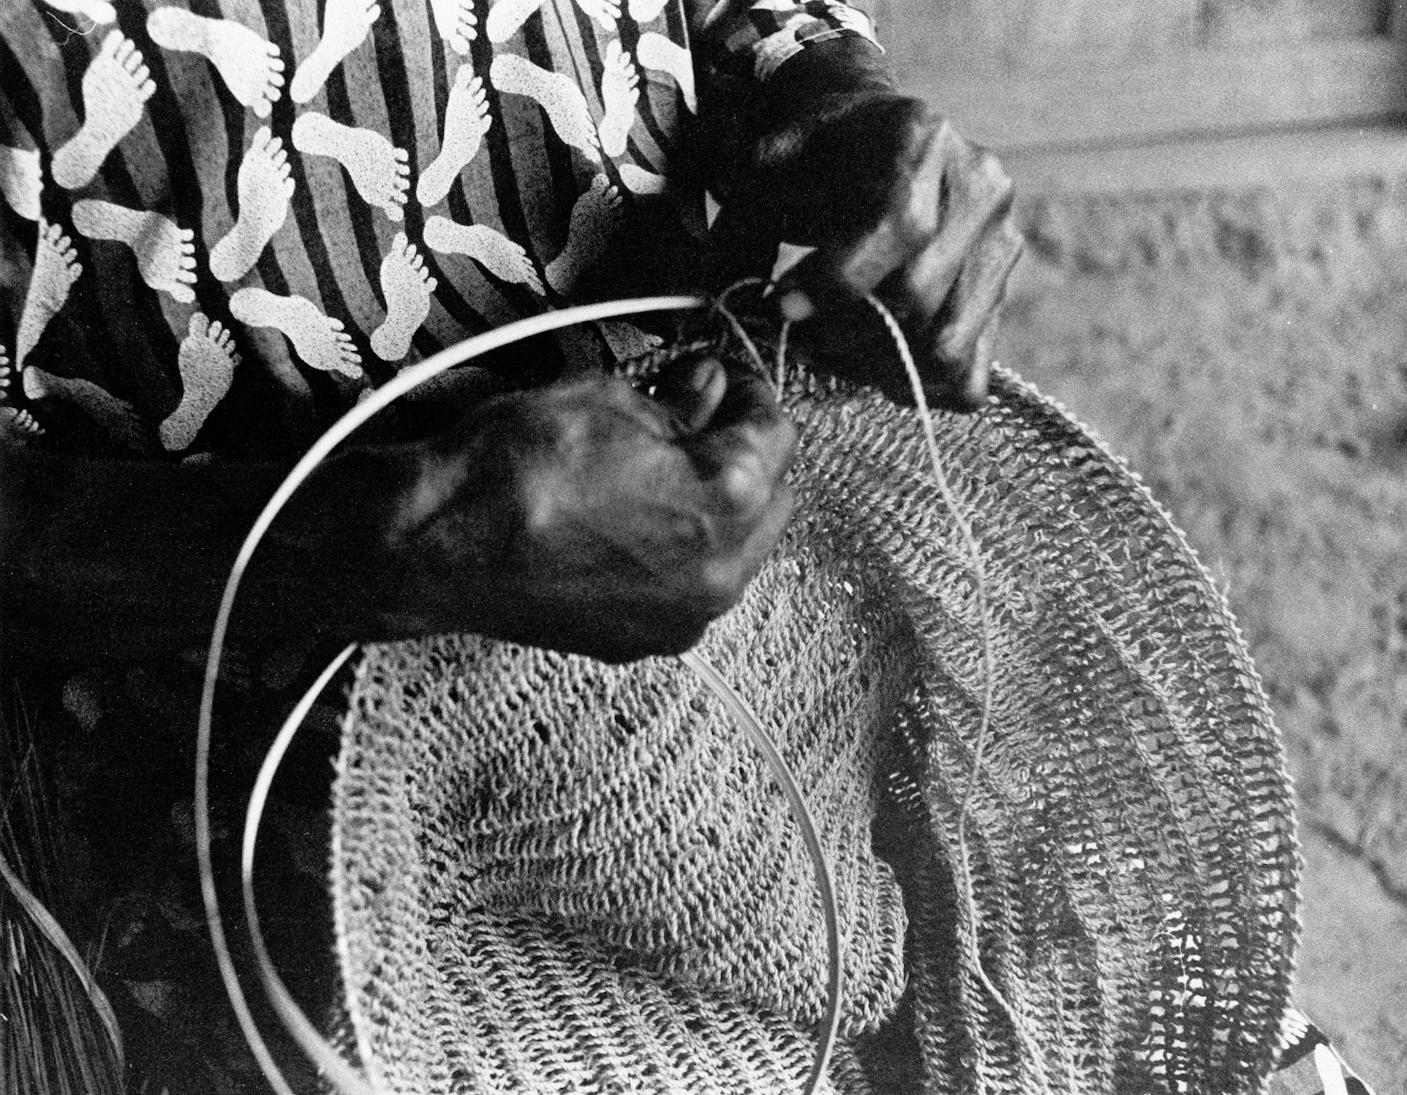 Woman Making Fish Net